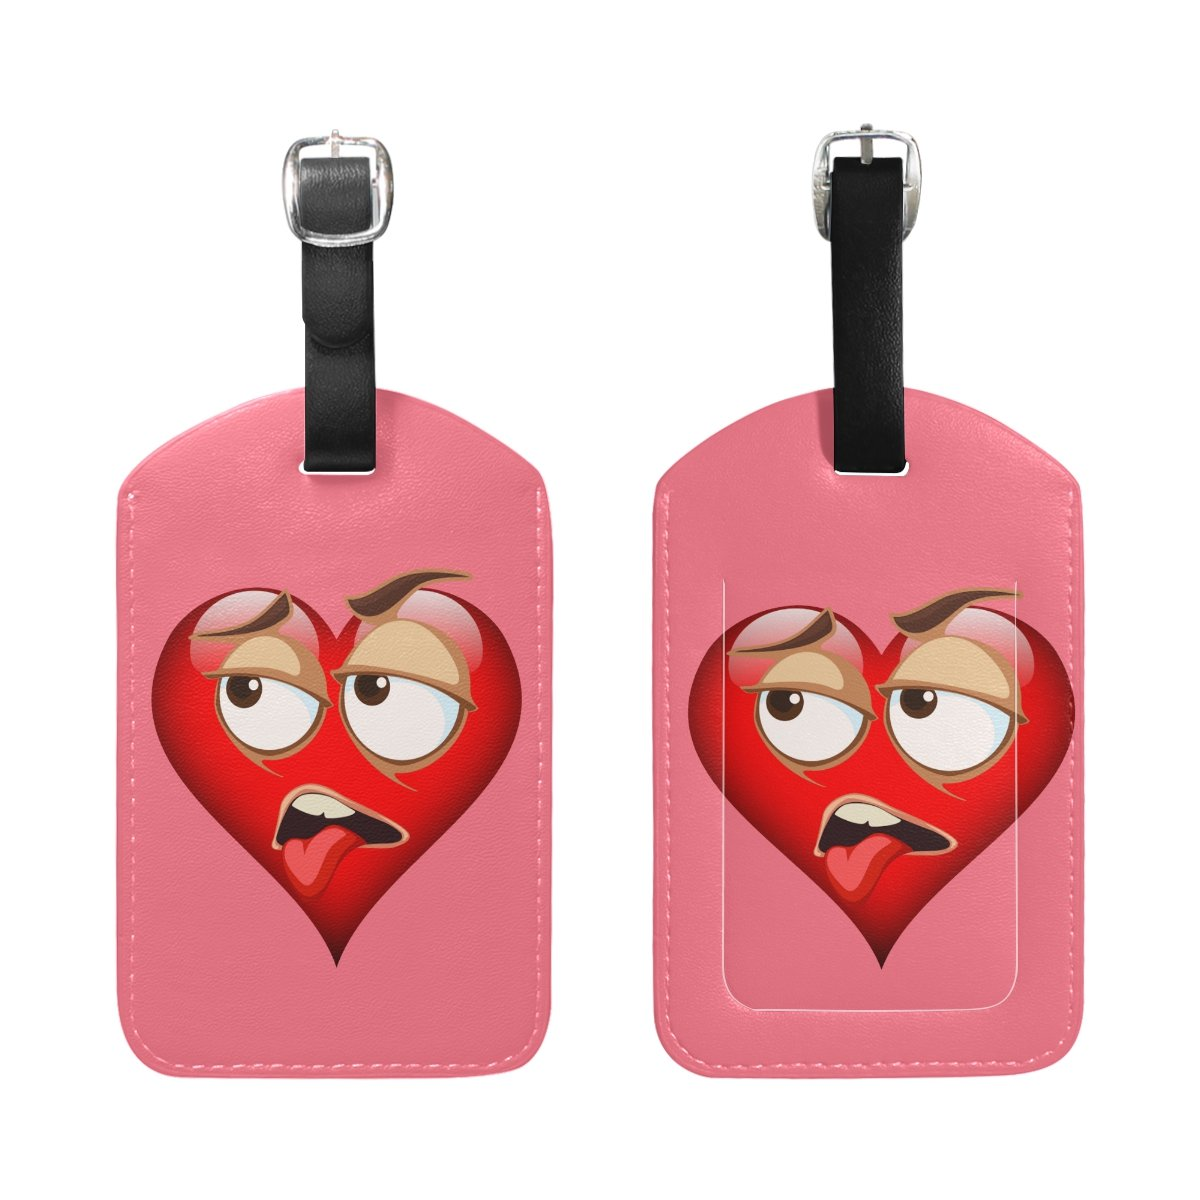 1Pcs Saobao Travel Luggage Tag Sweatful Emoji PU Leather Baggage Suitcase Travel ID Bag Tag